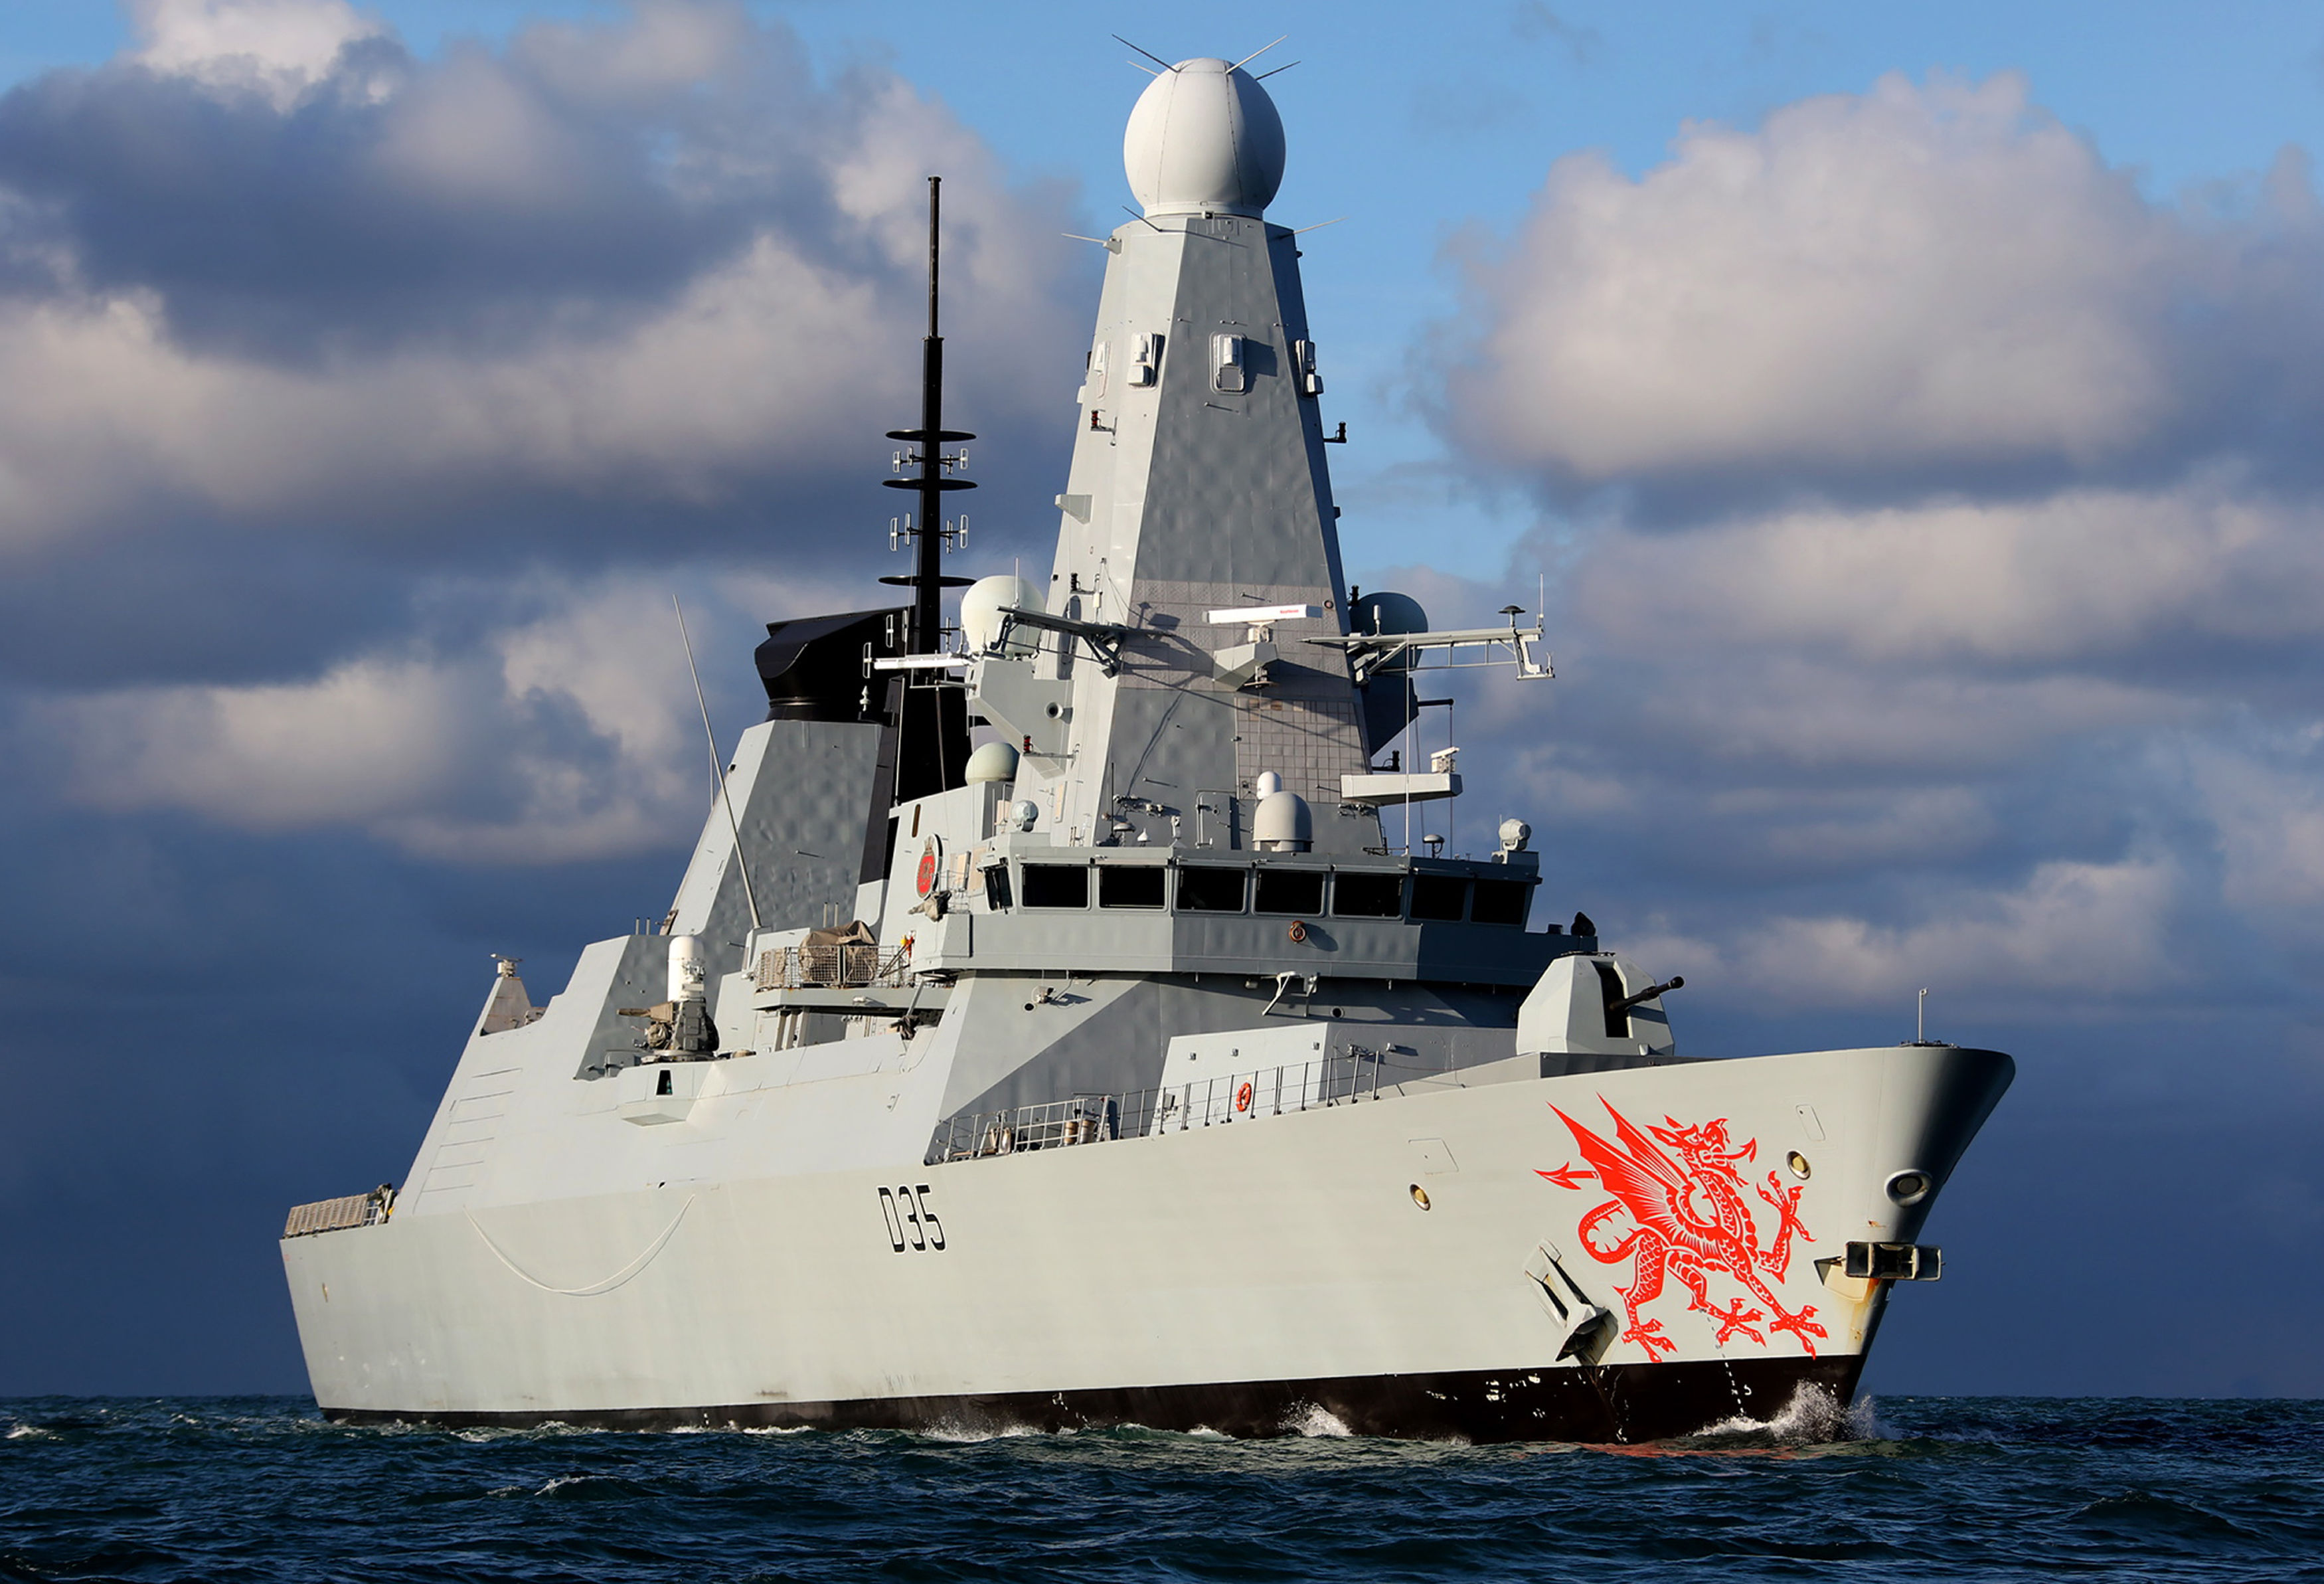 Clydebuilt warship HMS Dragon.